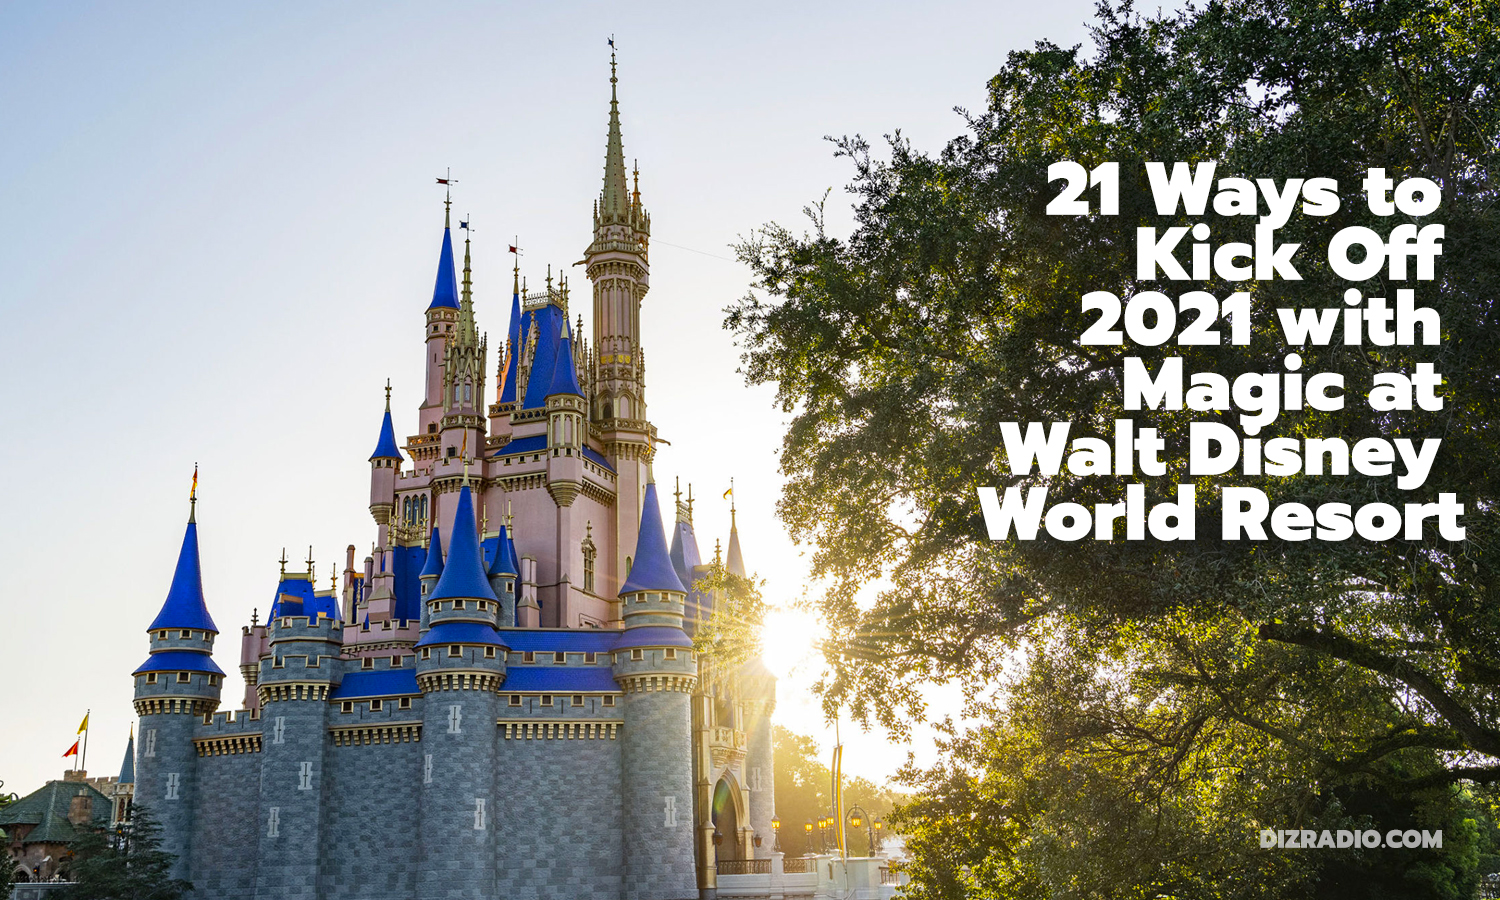 21 Ways to Kick Off 2021 with Magic at Walt Disney World Resort